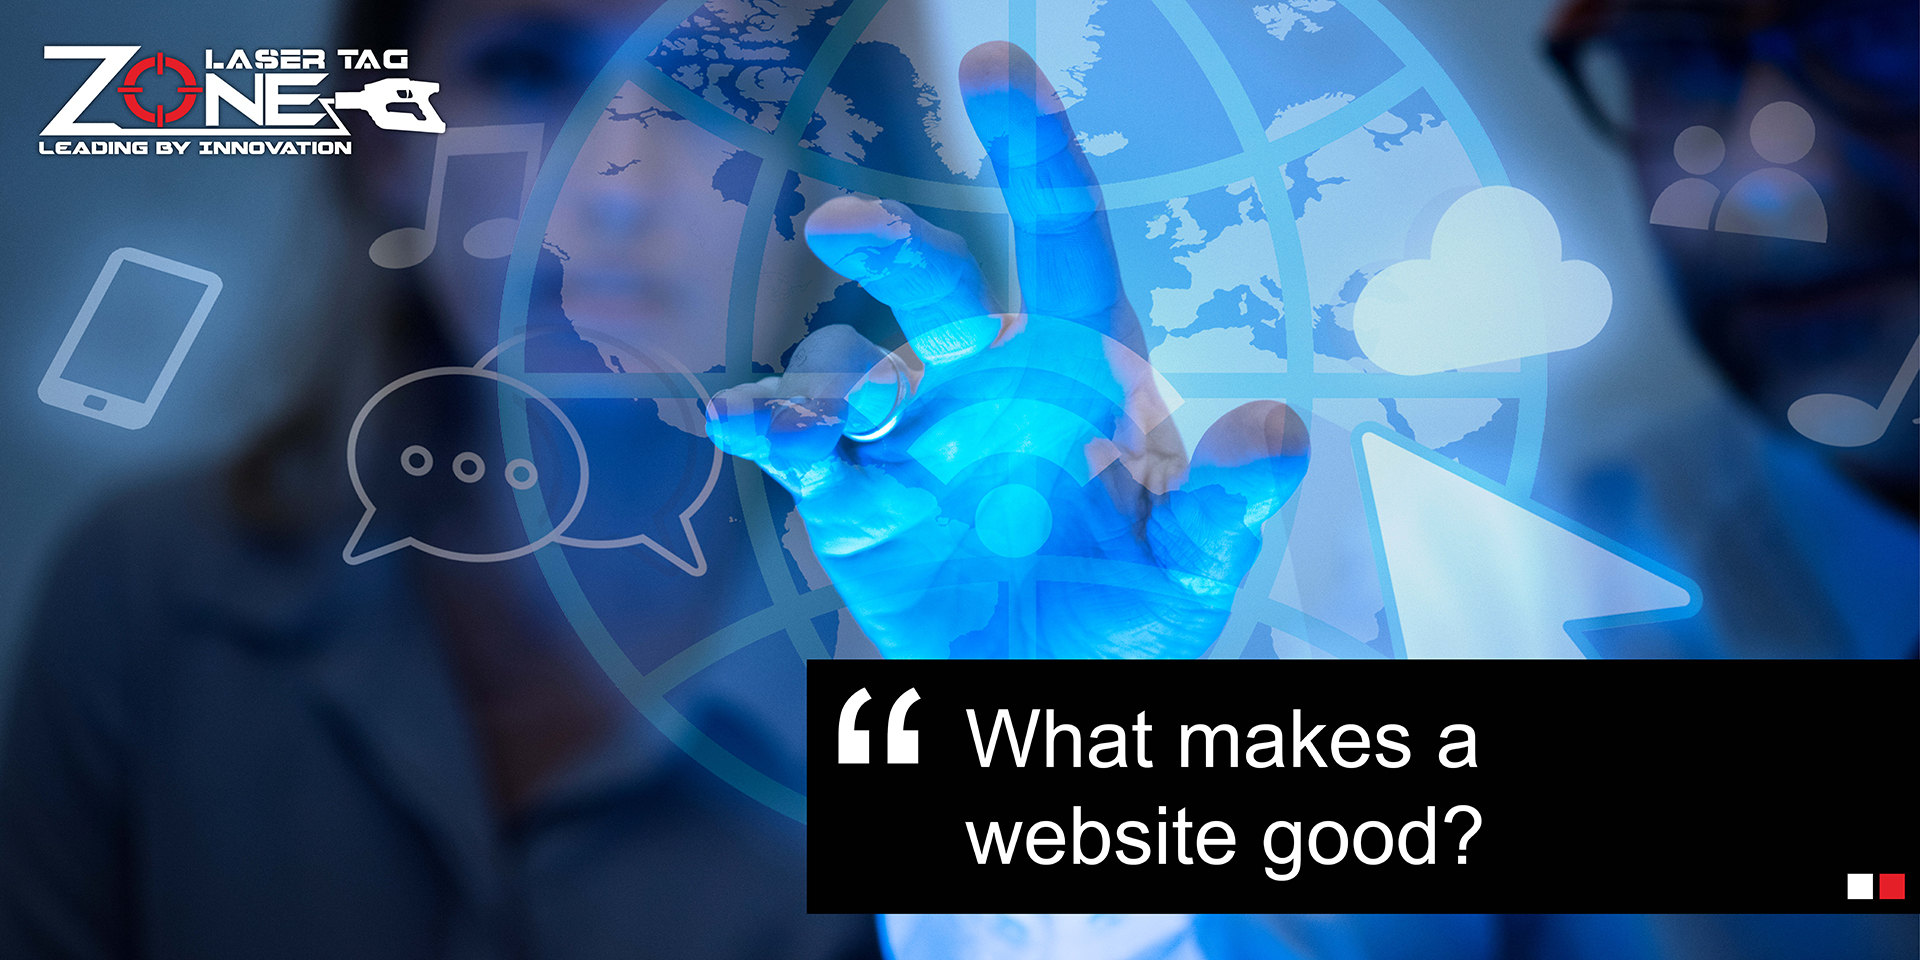 What makes a website good?